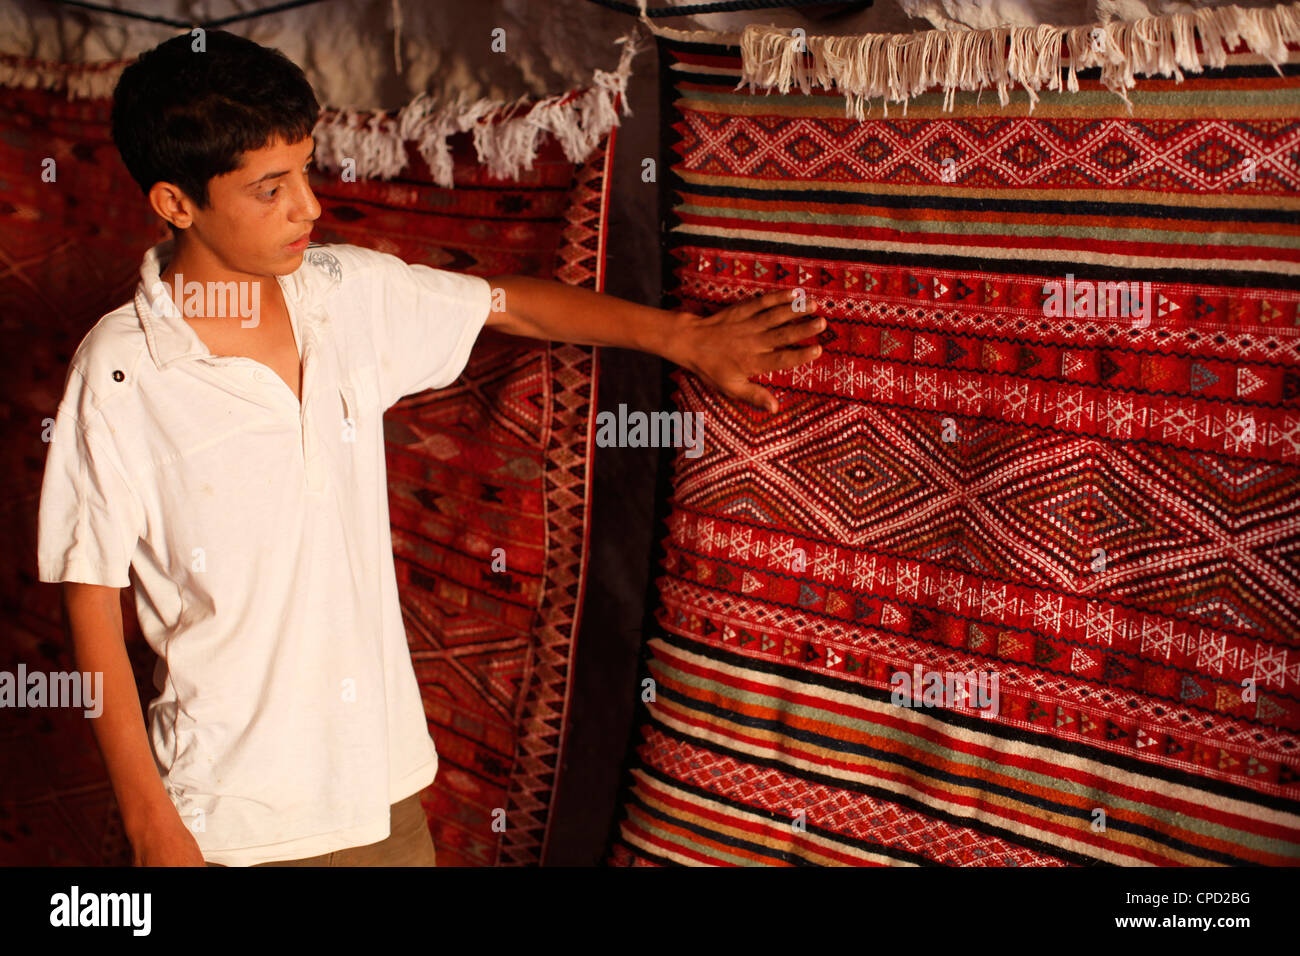 Boy showing a rug in a carpet shop, Toujane, Tunisia, North Africa, Africa - Stock Image